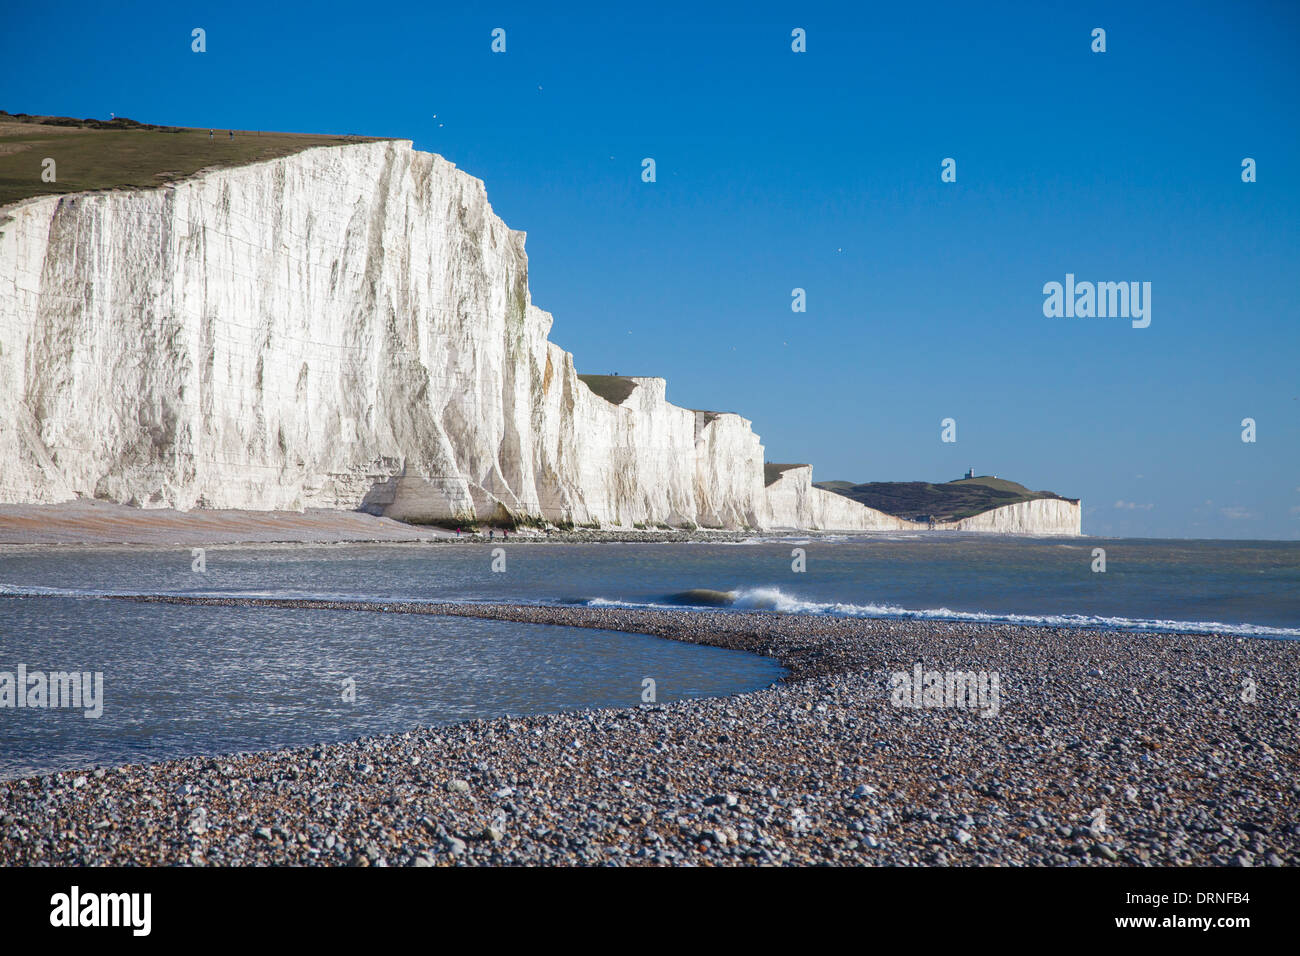 The Seven Sisters from Cuckmere Haven Beach, County Sussex, England. - Stock Image